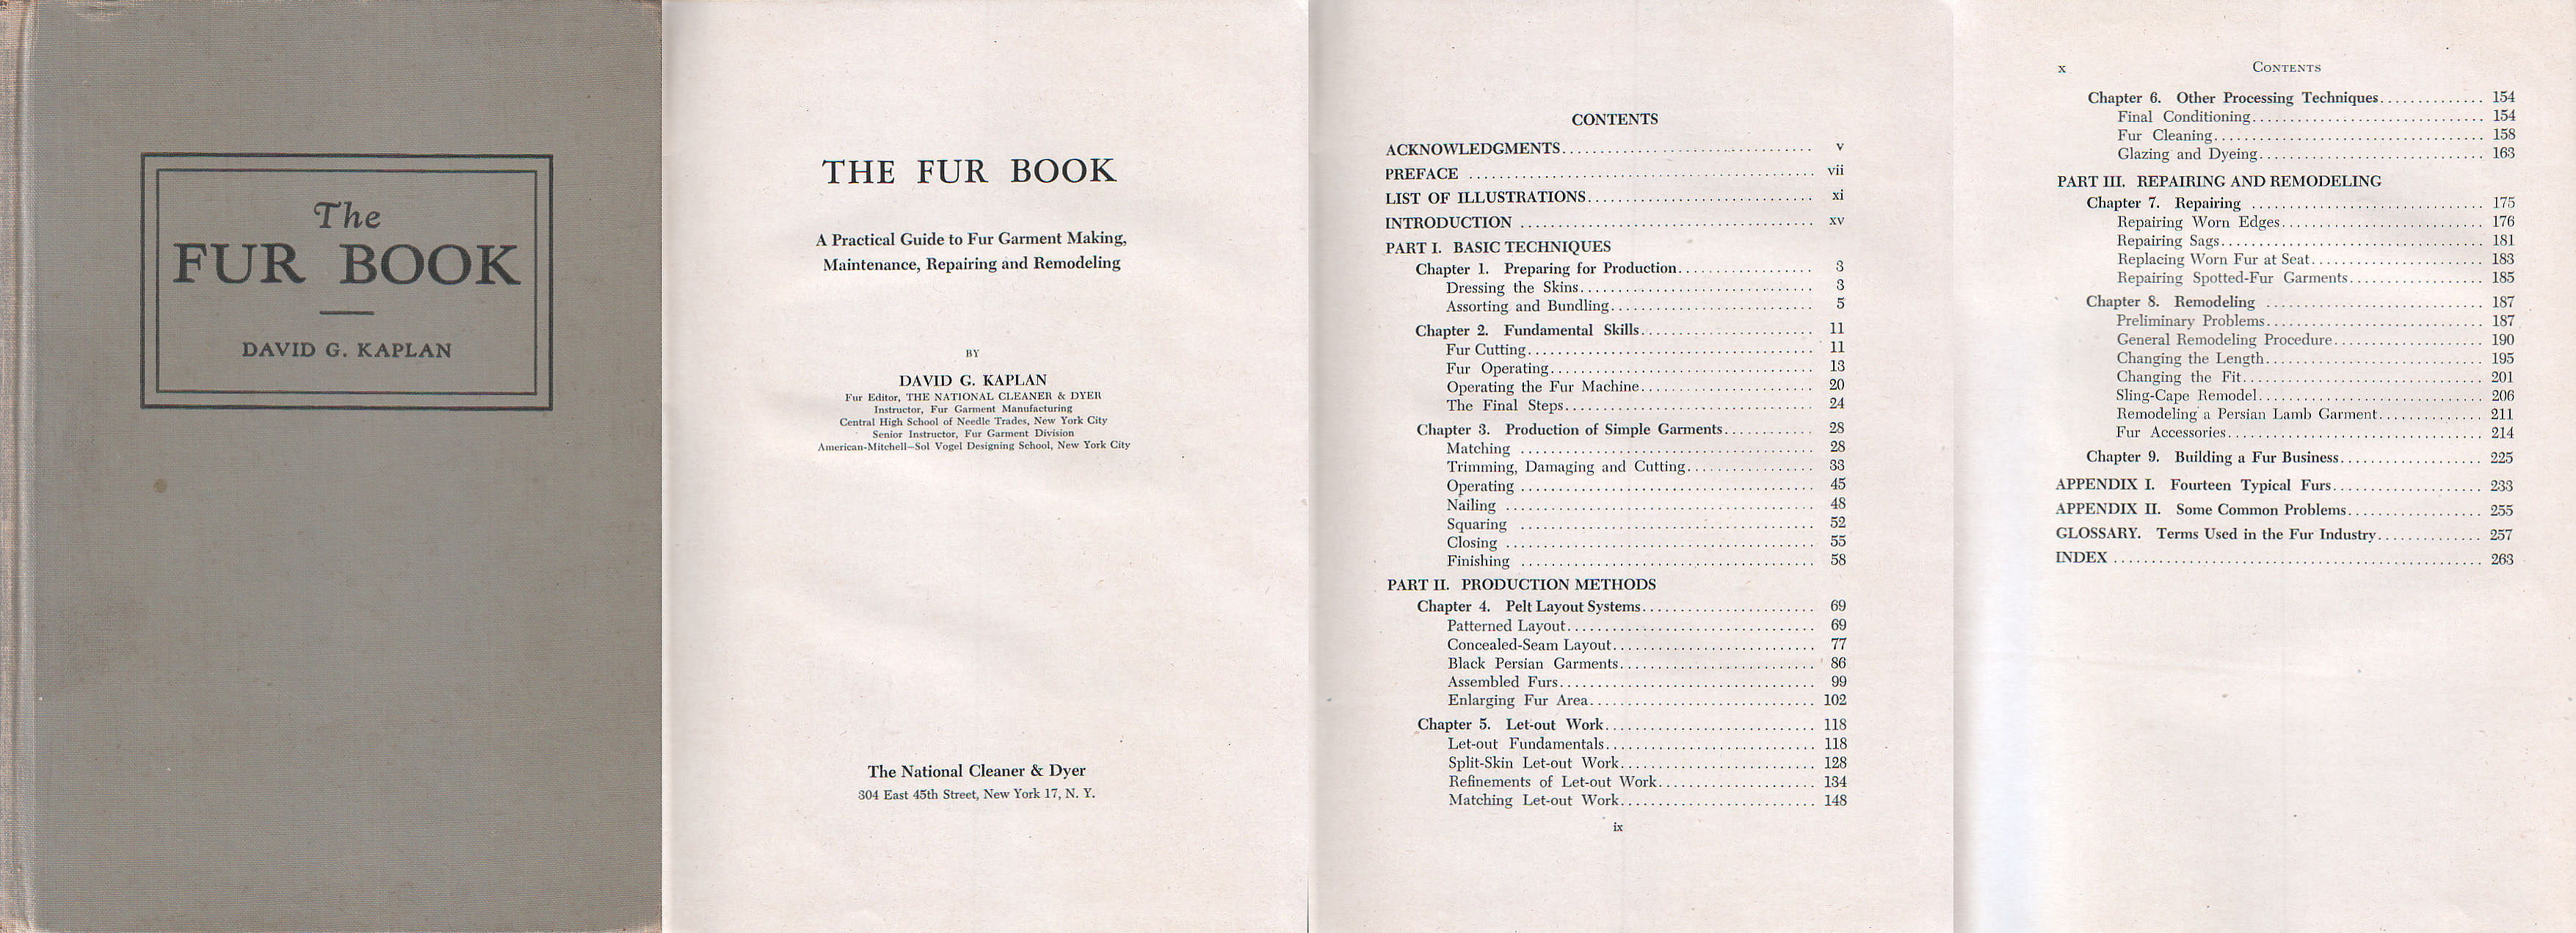 File:The Fur Book, David G. Kaplan, New York 1950